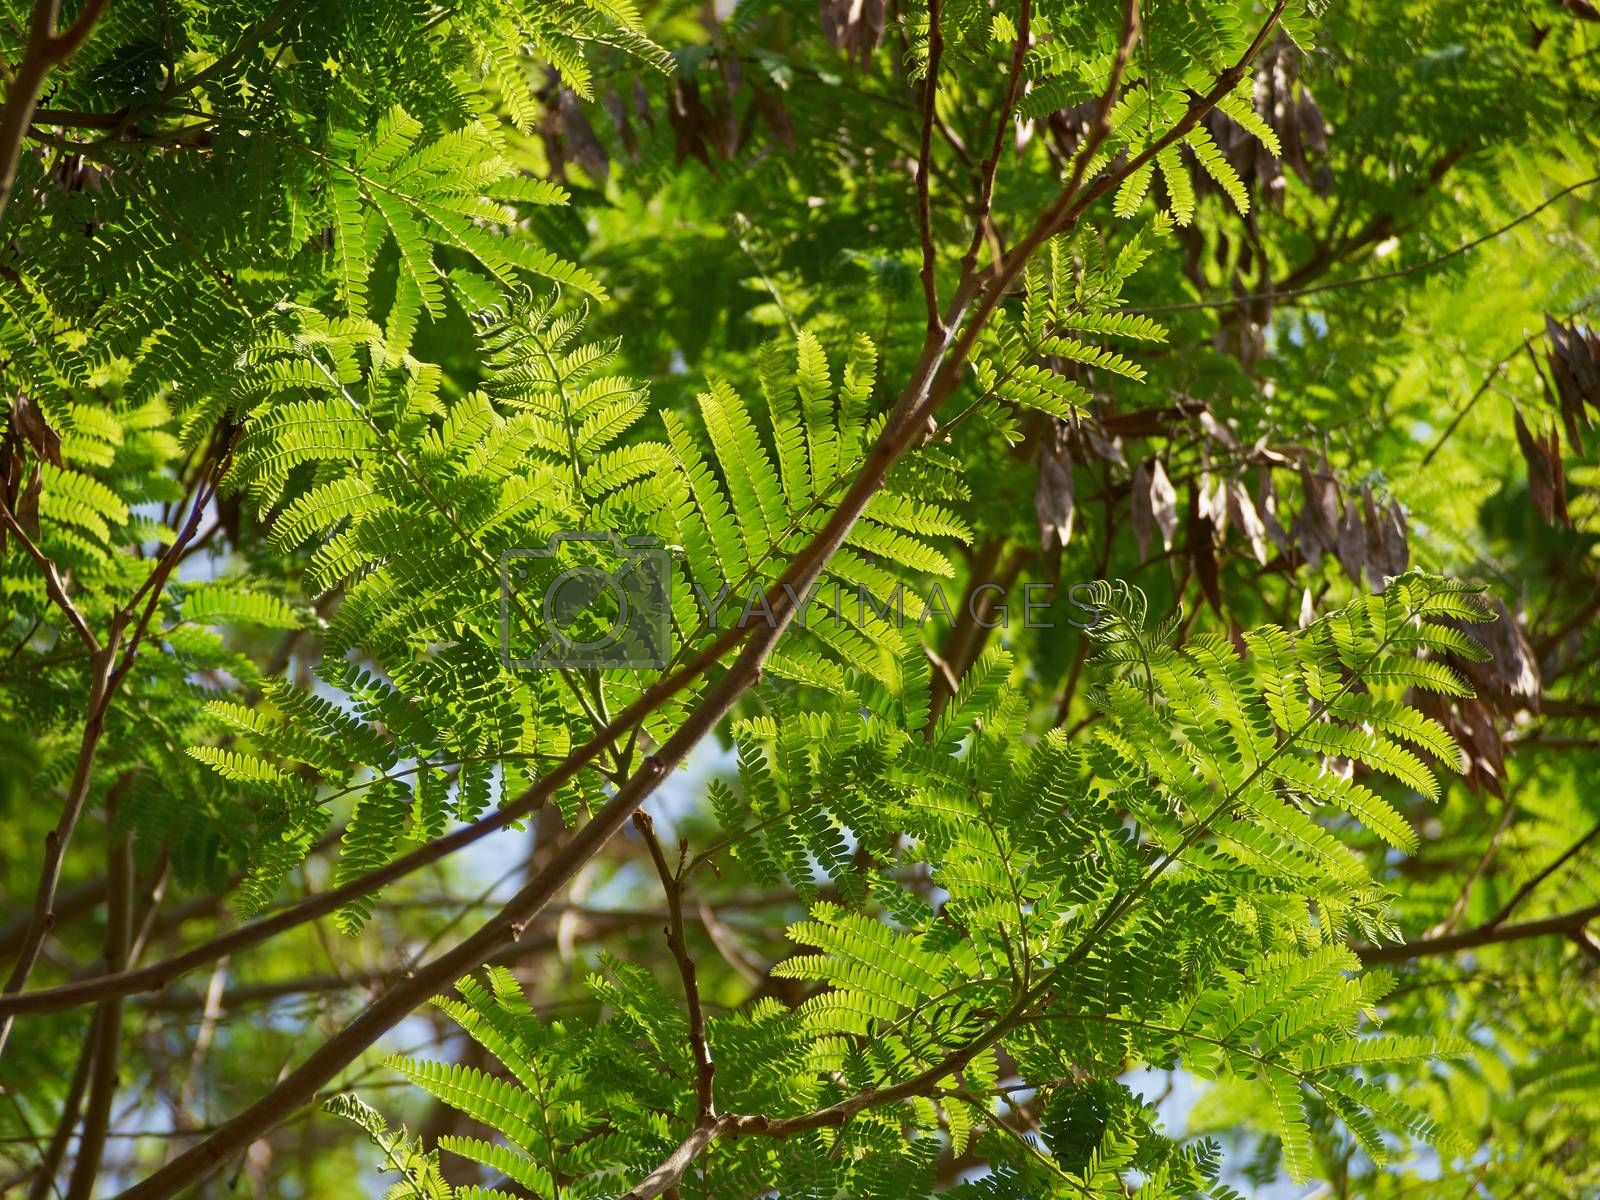 Royalty free image of Sunlight via green leaves of a tree by Ronyzmbow